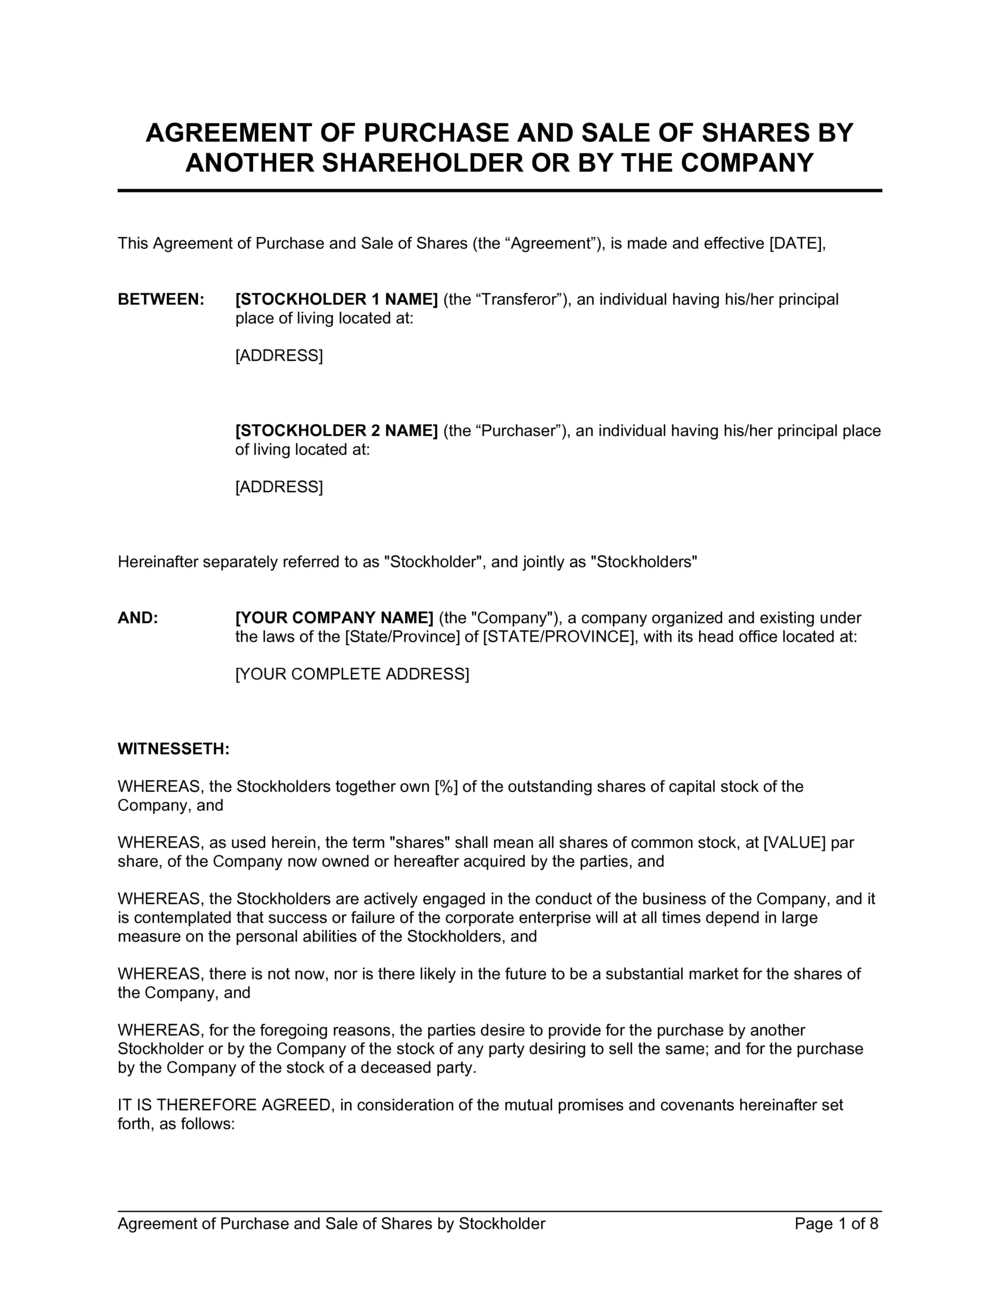 Business-in-a-Box's Agreement of Purchase and Sale of Shares by Shareholder Template